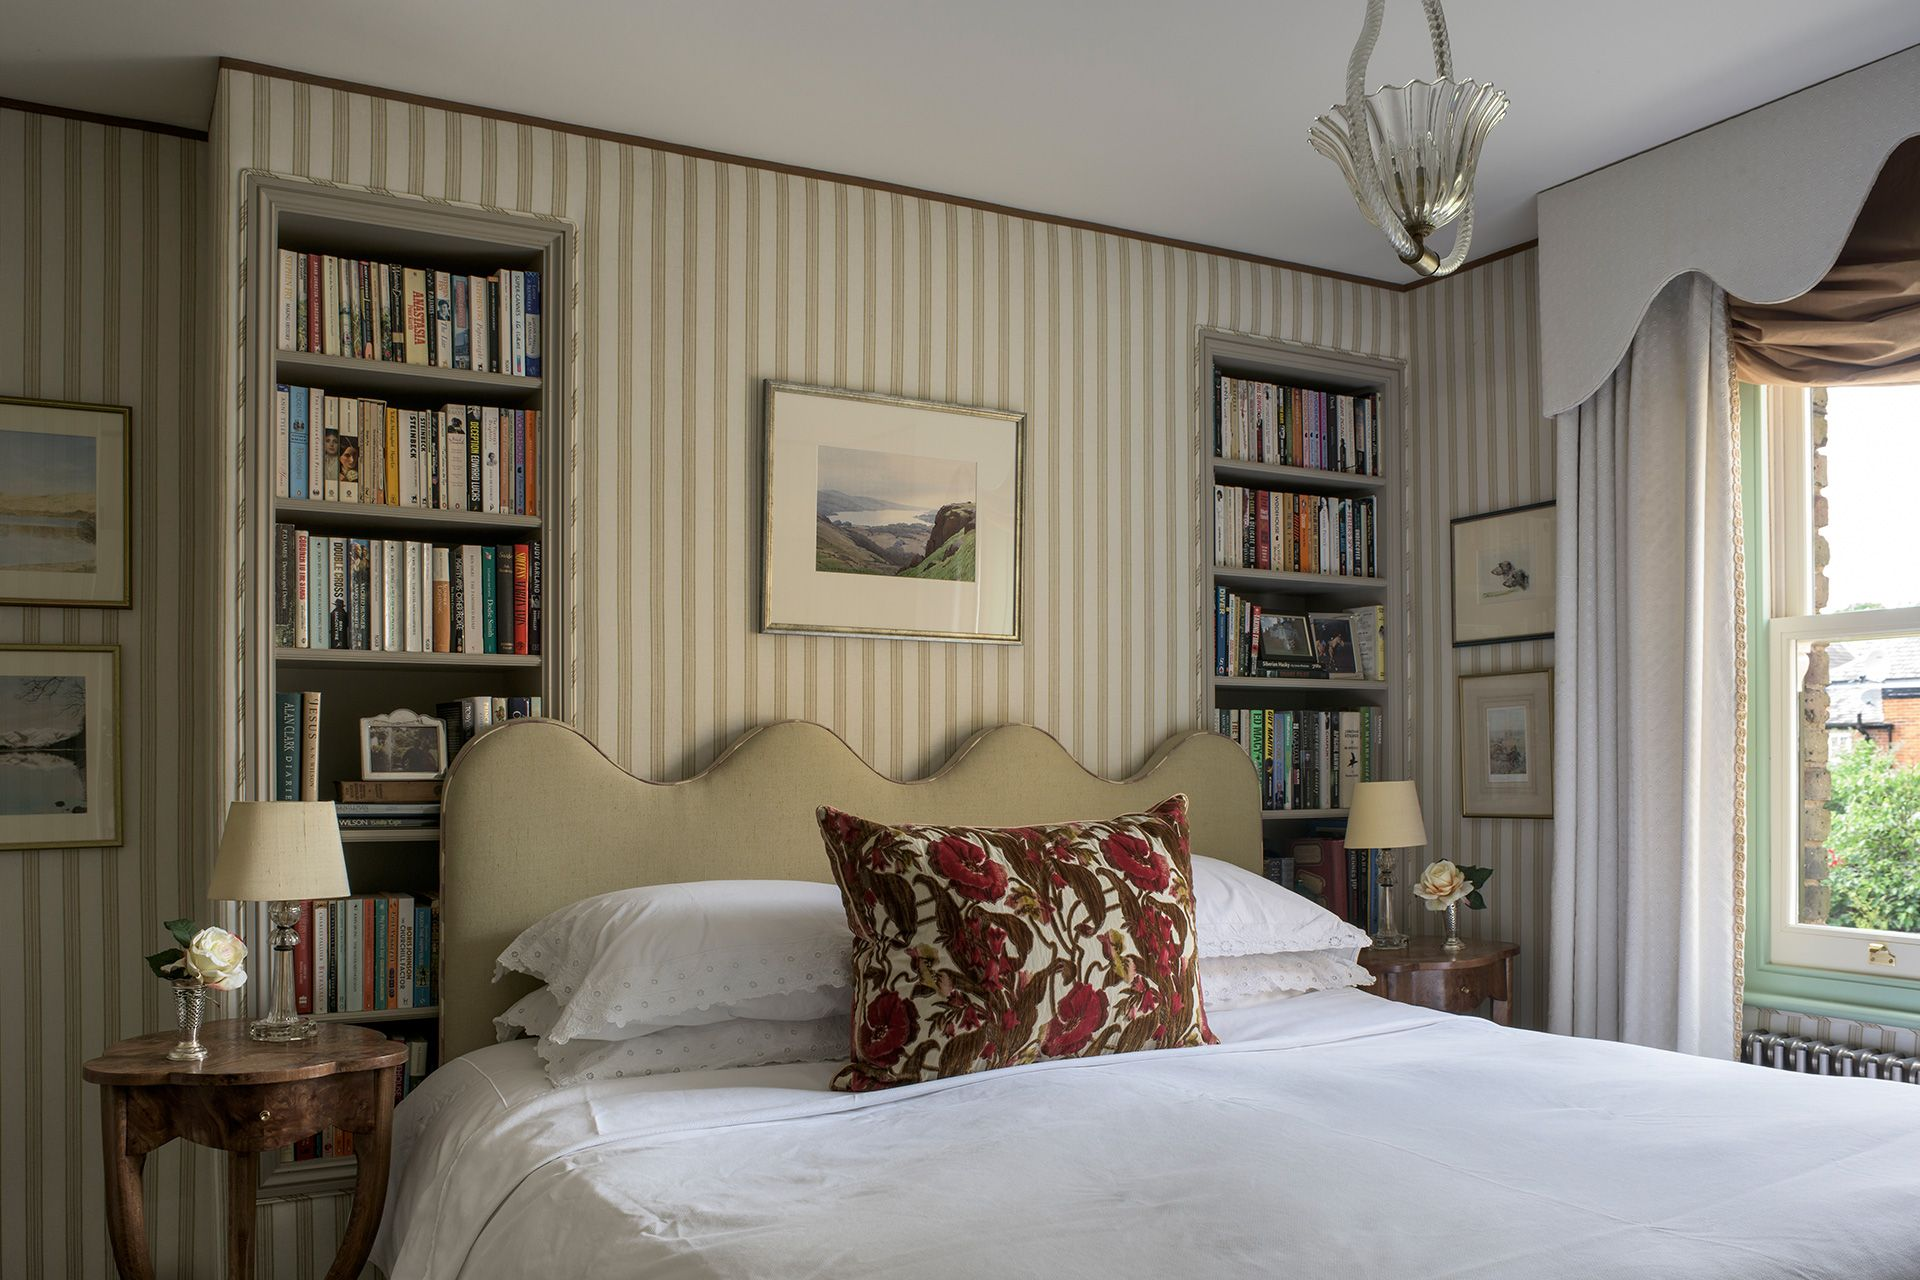 Louise Jones Interiors stunning bedroom design Interior